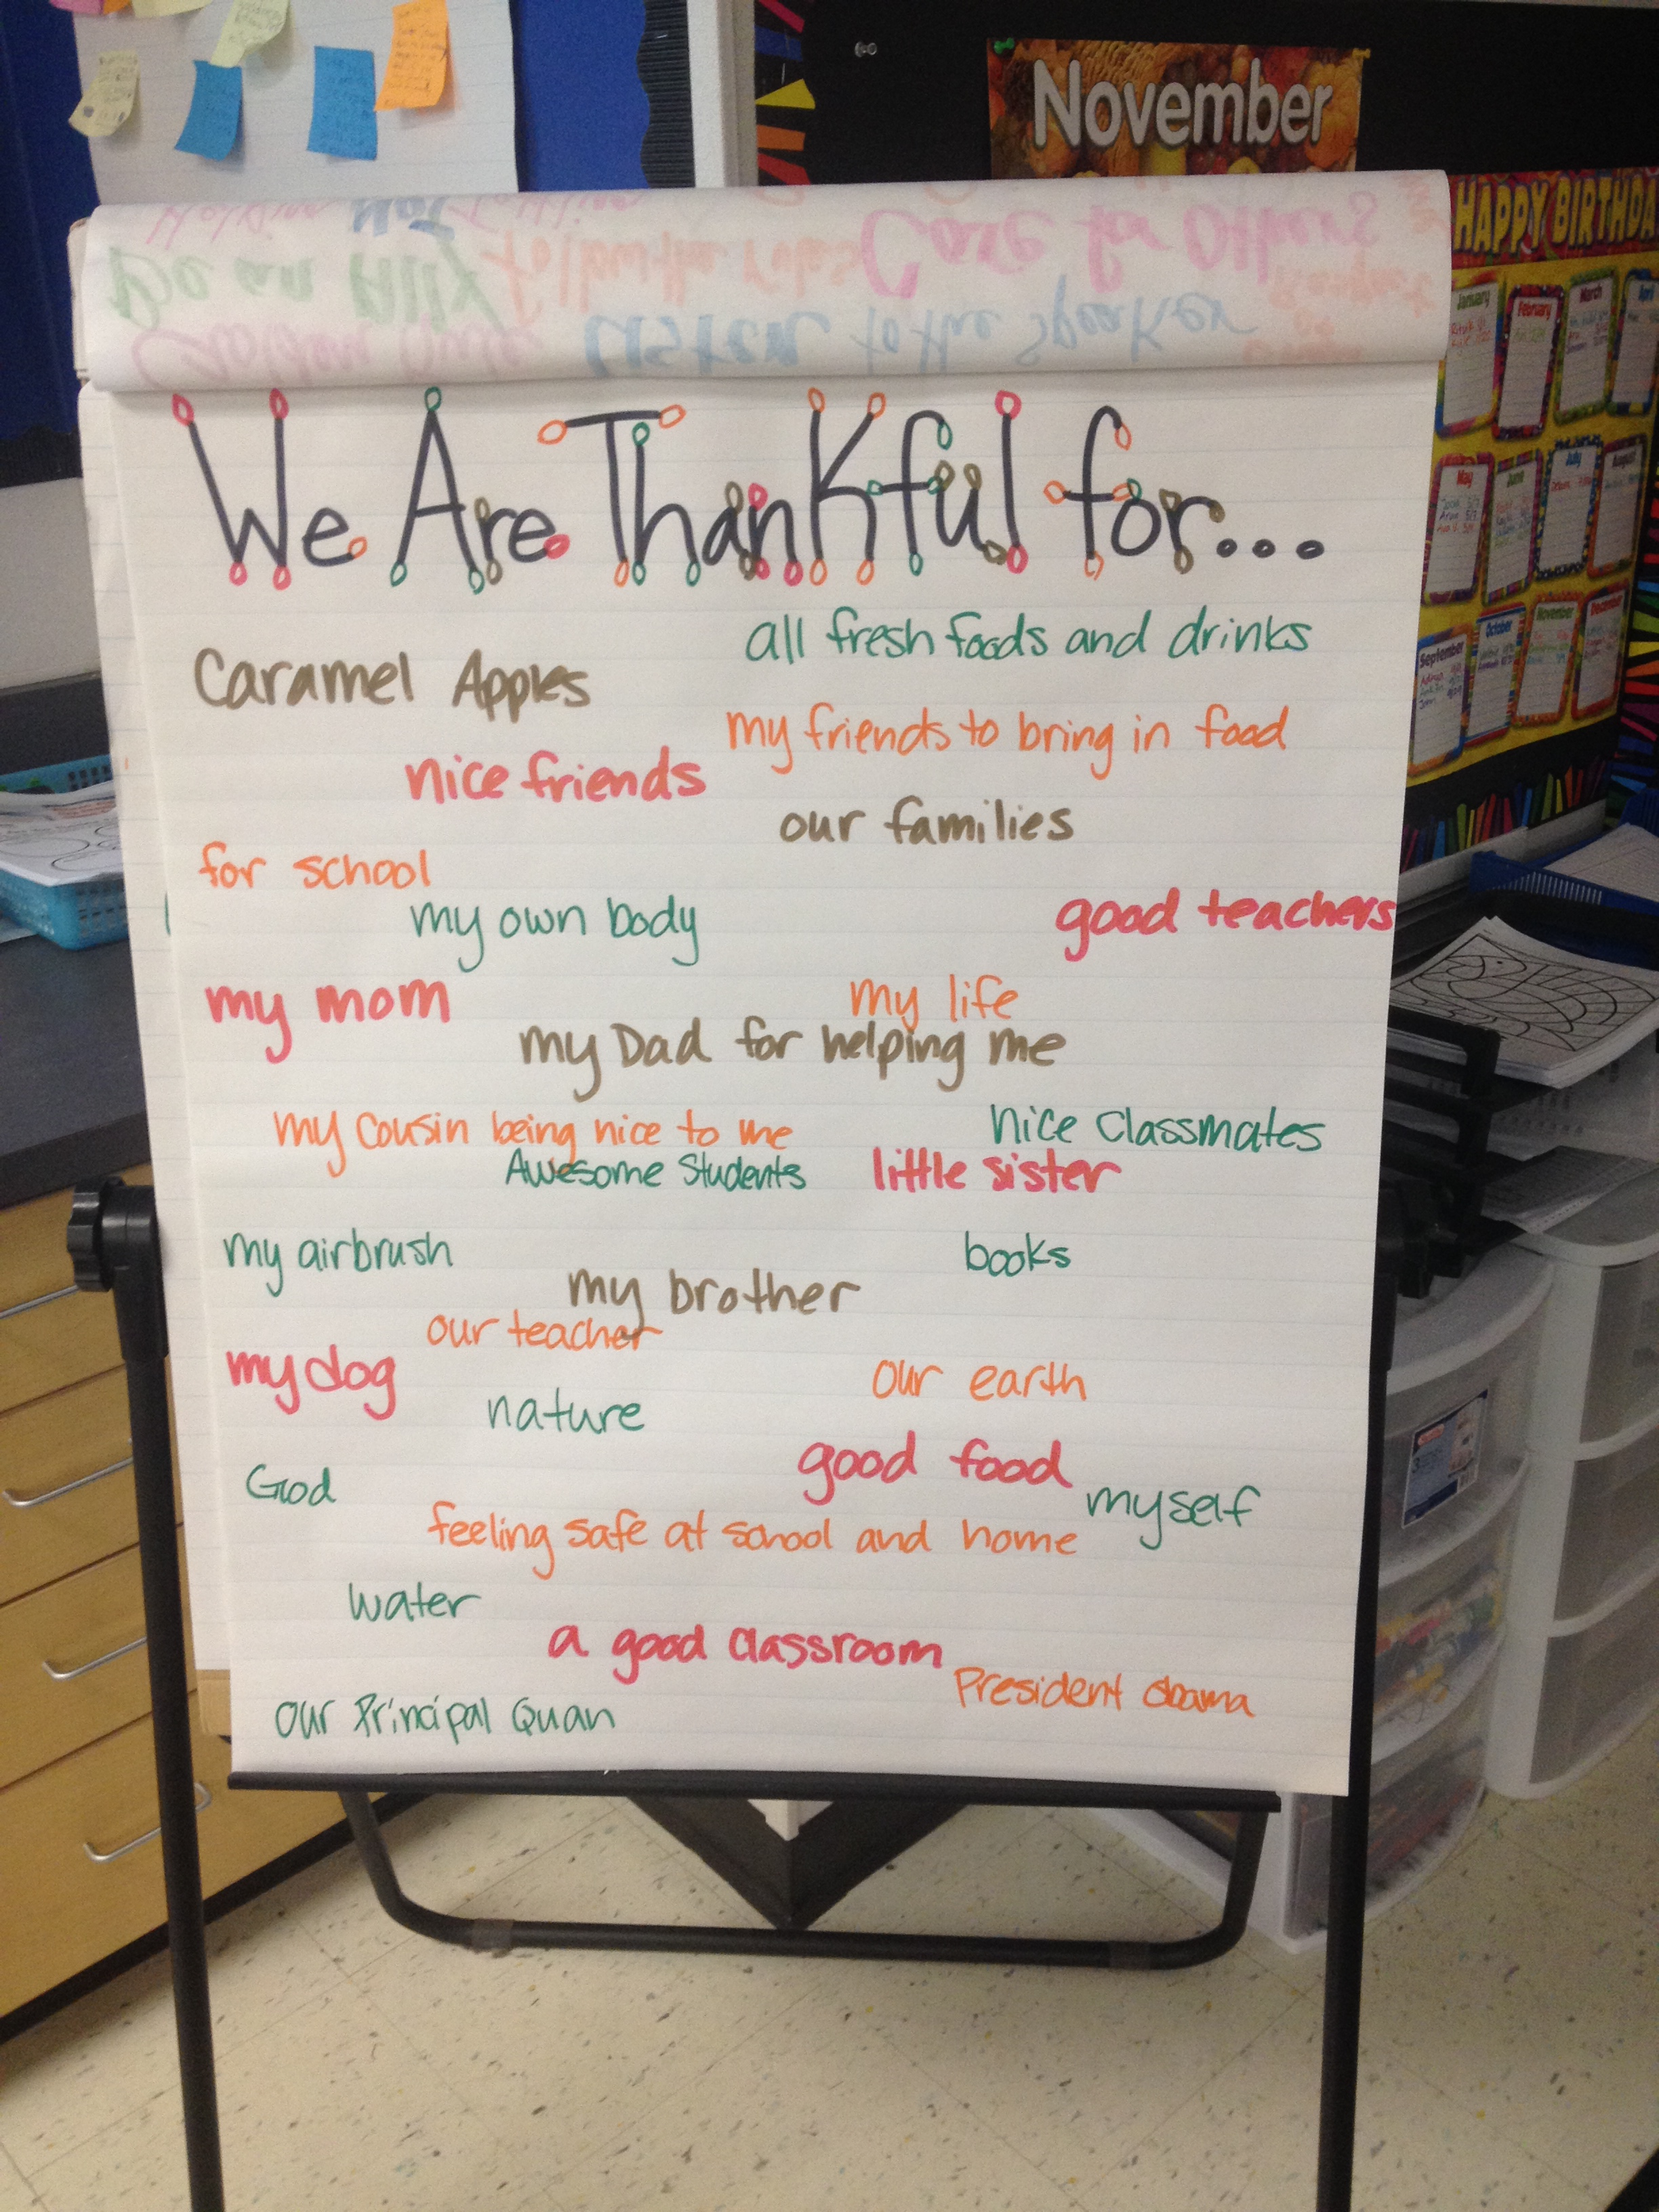 A class brainstorm of things we are thankful for in life,